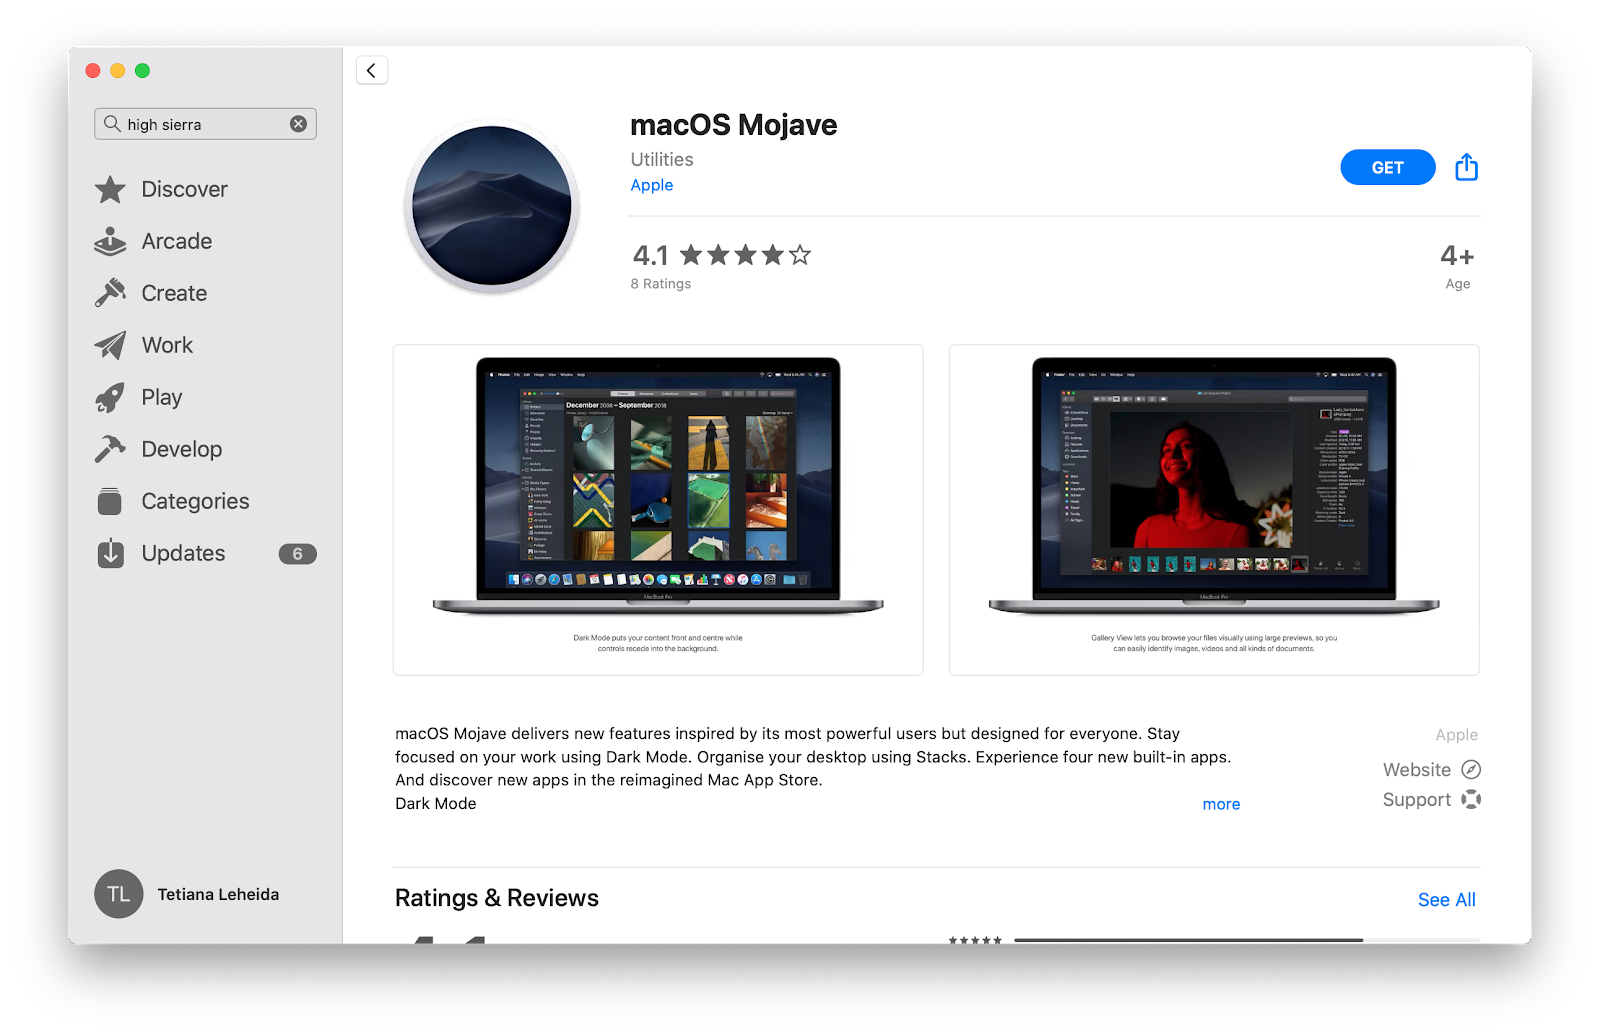 macOS Mojave App Store page